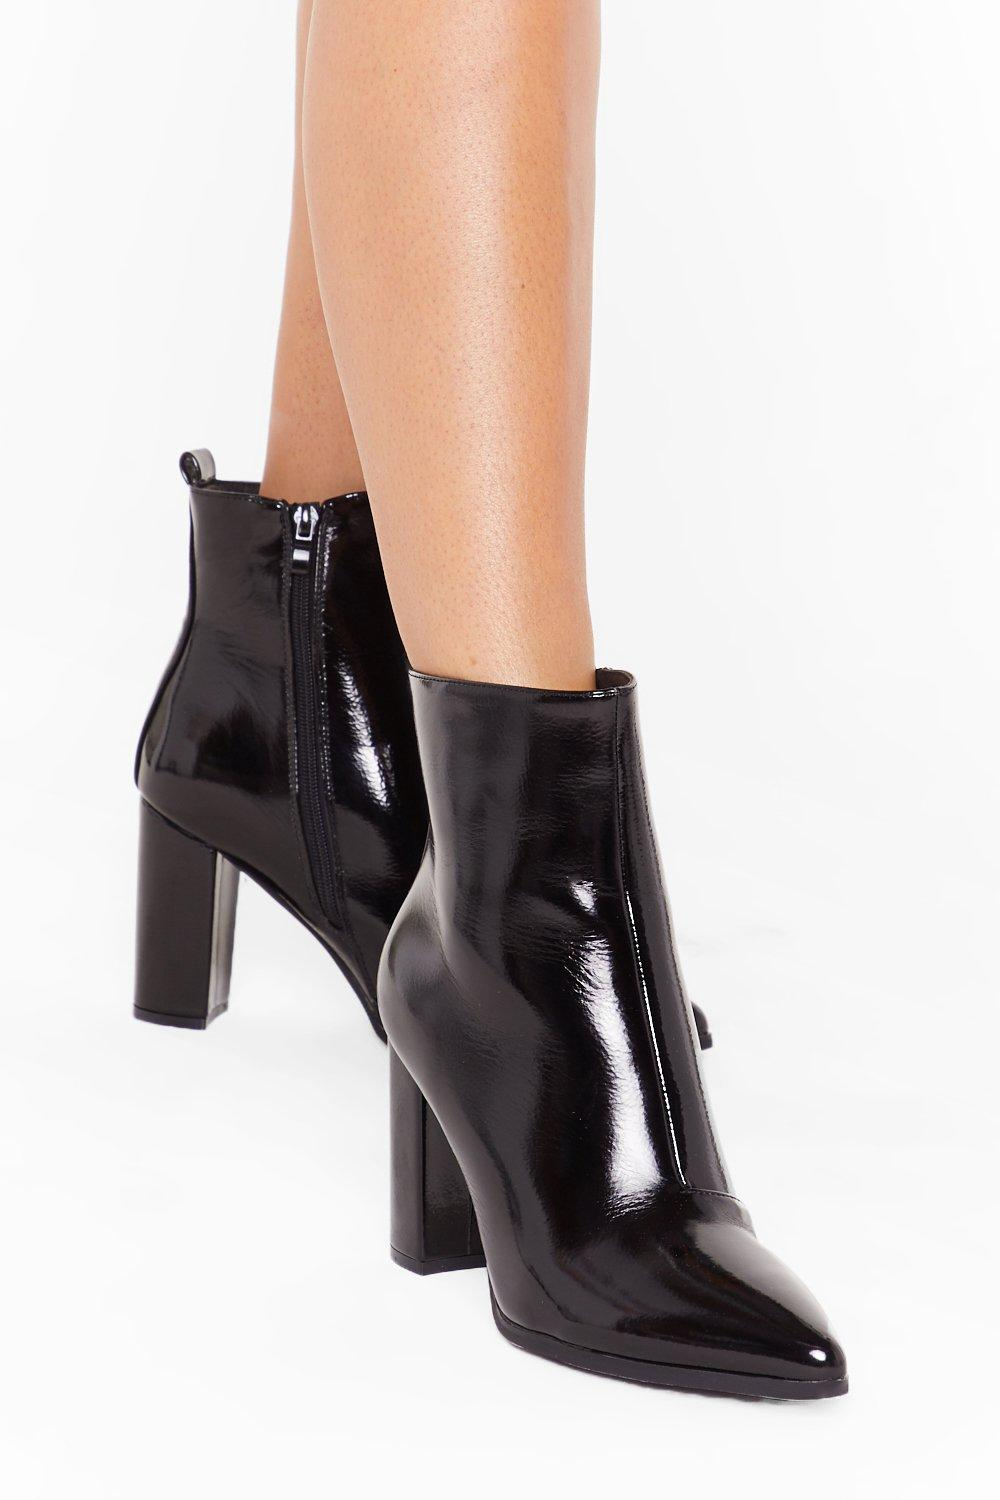 Image of Patent For You Heeled Ankle Boots